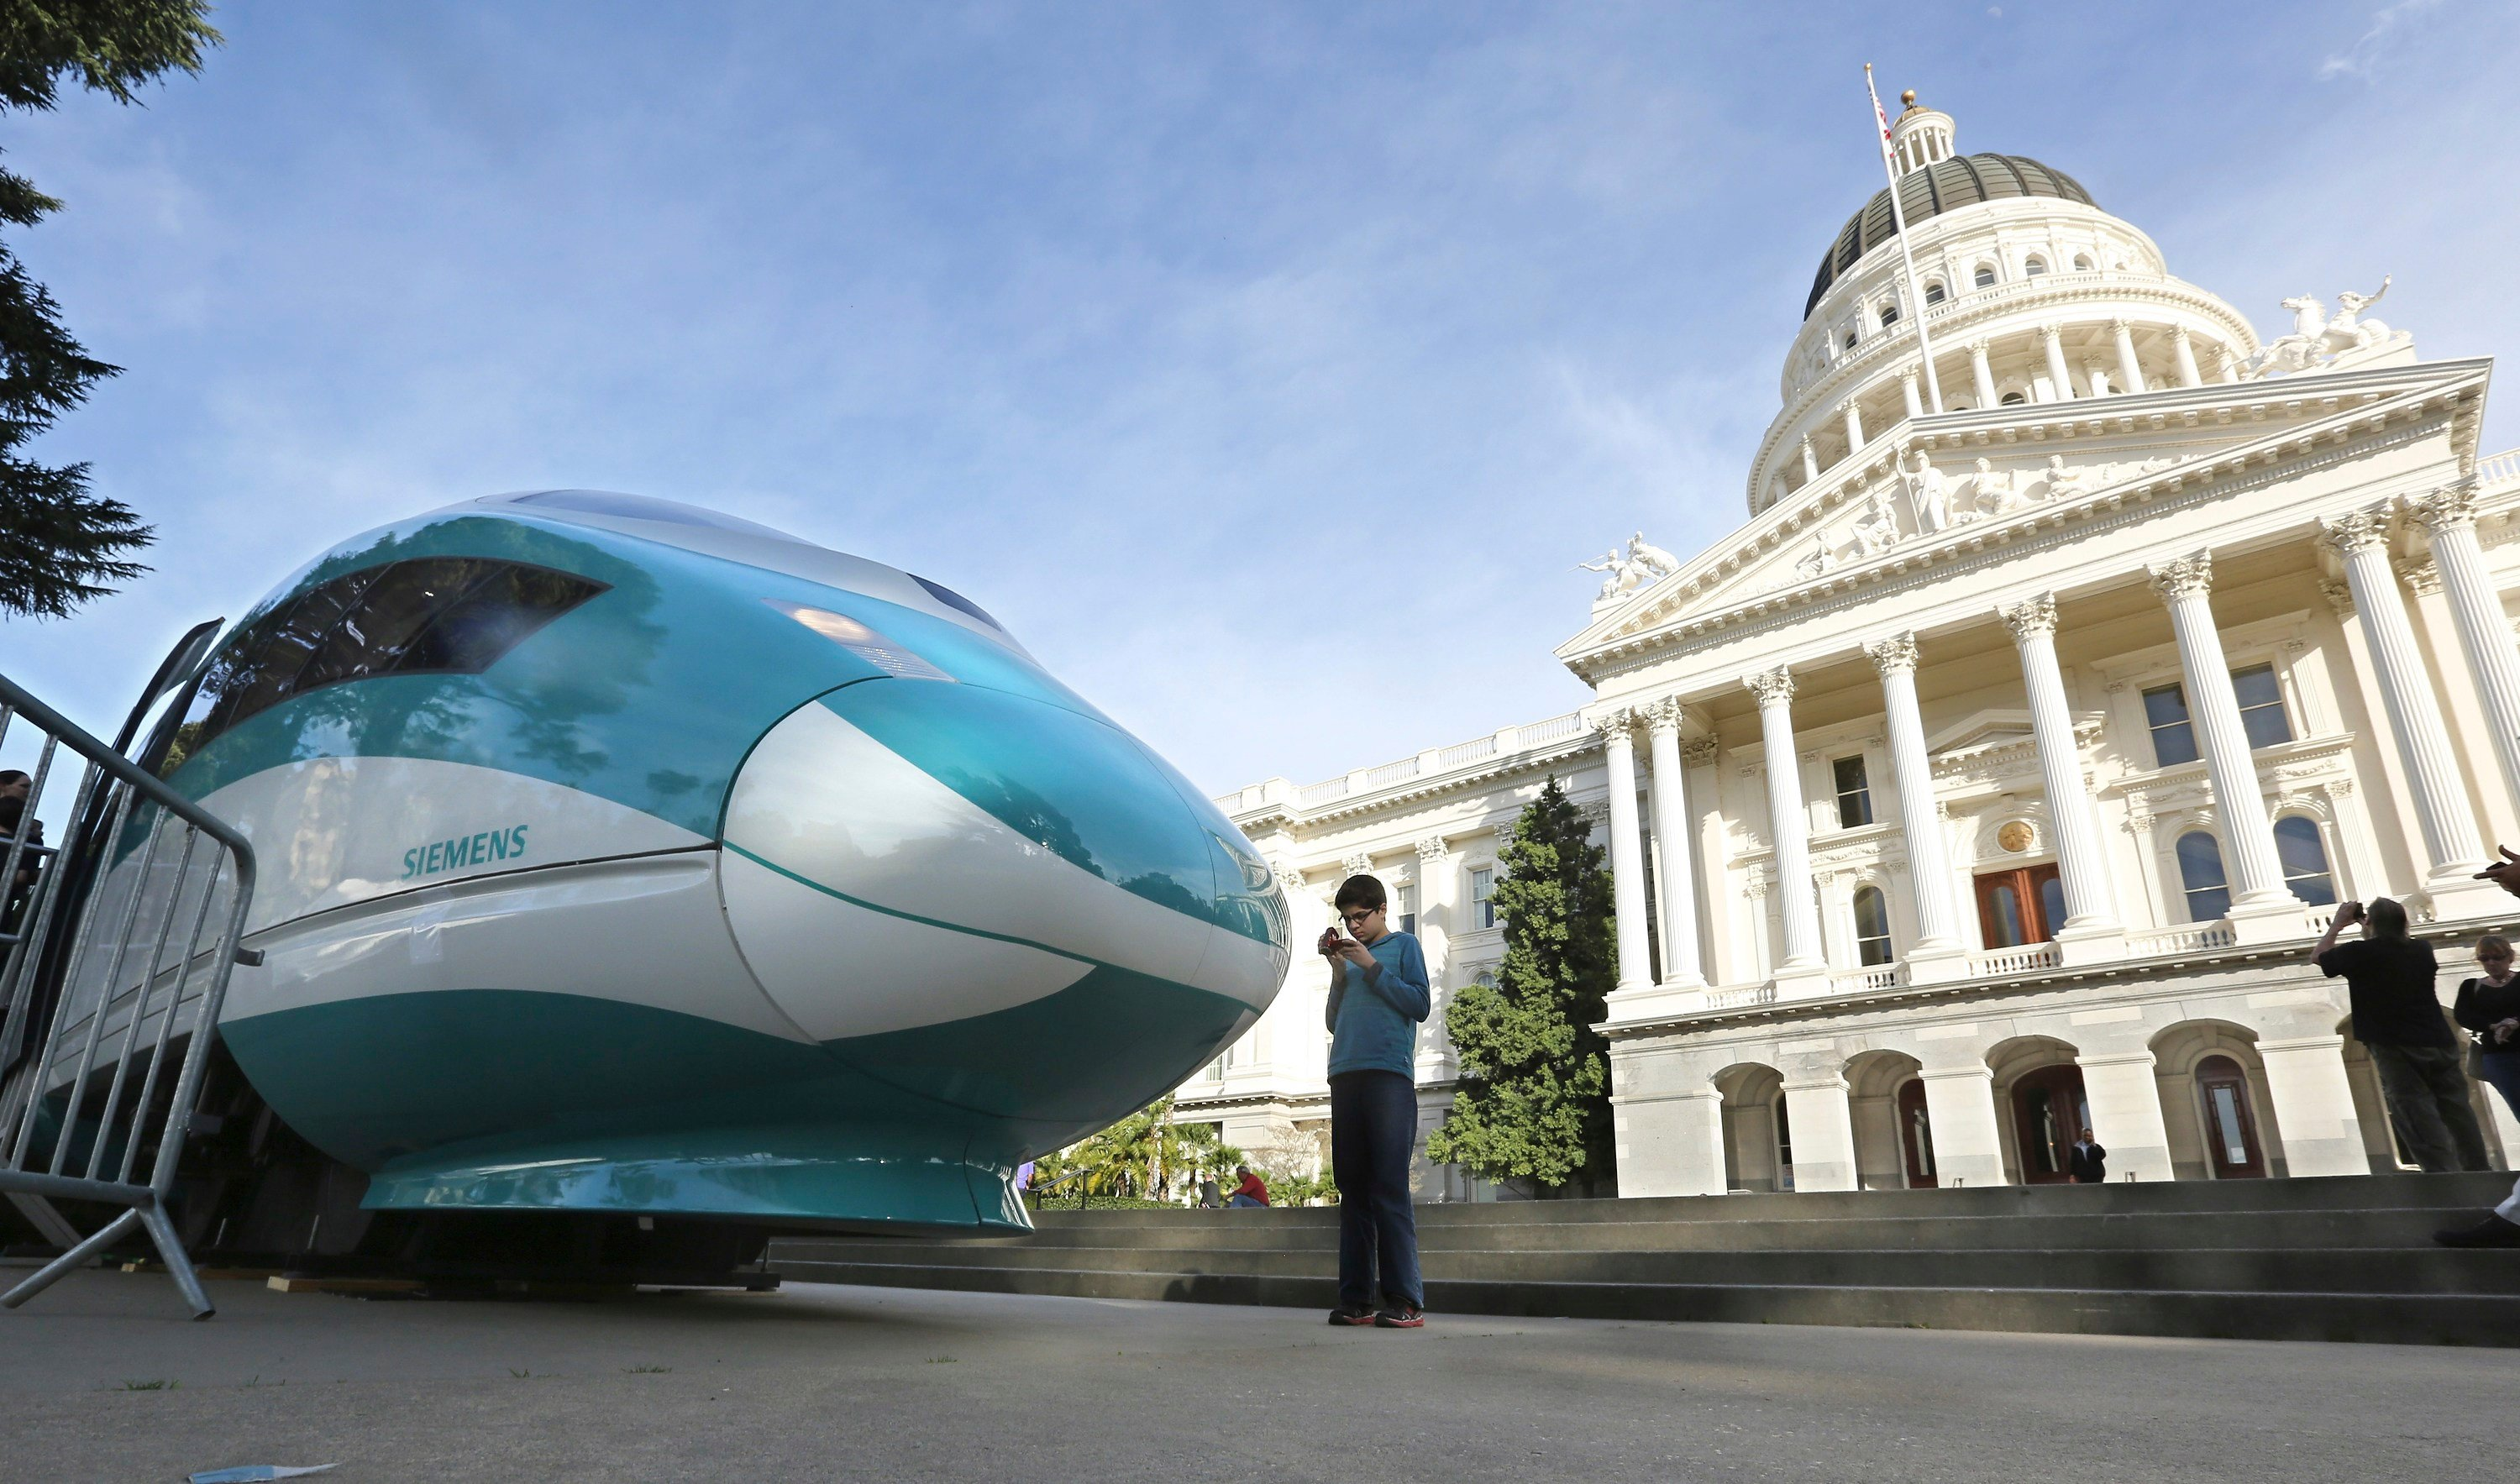 FILE - In this Feb. 26, 2015 file photo, a full-scale mock-up of a high-speed train is displayed at the Capitol in Sacramento, Calif. (AP Photo/Rich Pedroncelli, File)